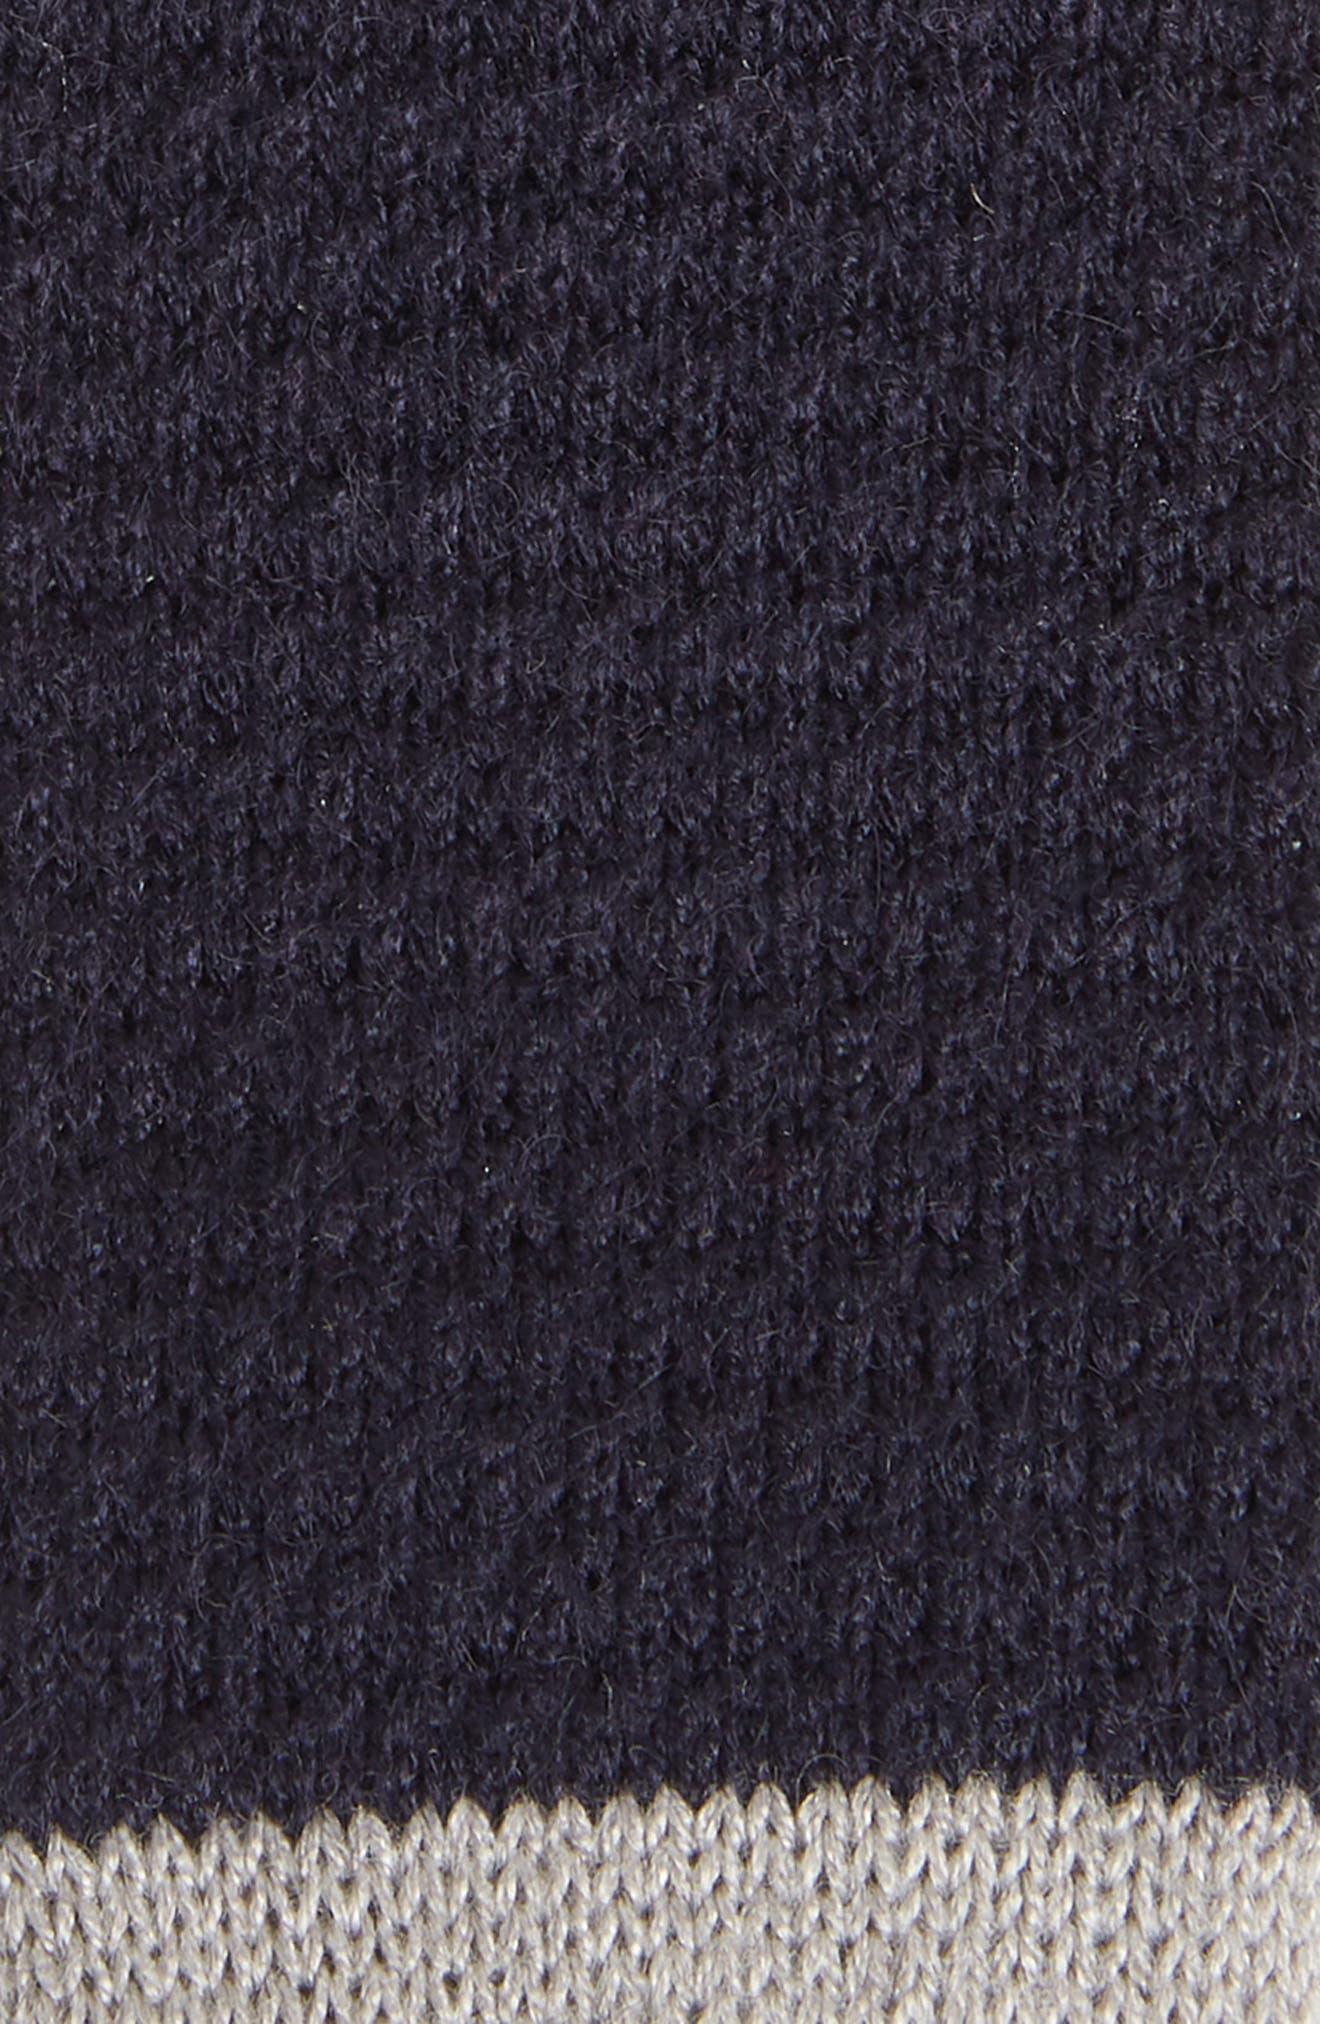 Belvin Knit Skinny Tie,                             Alternate thumbnail 2, color,                             Navy